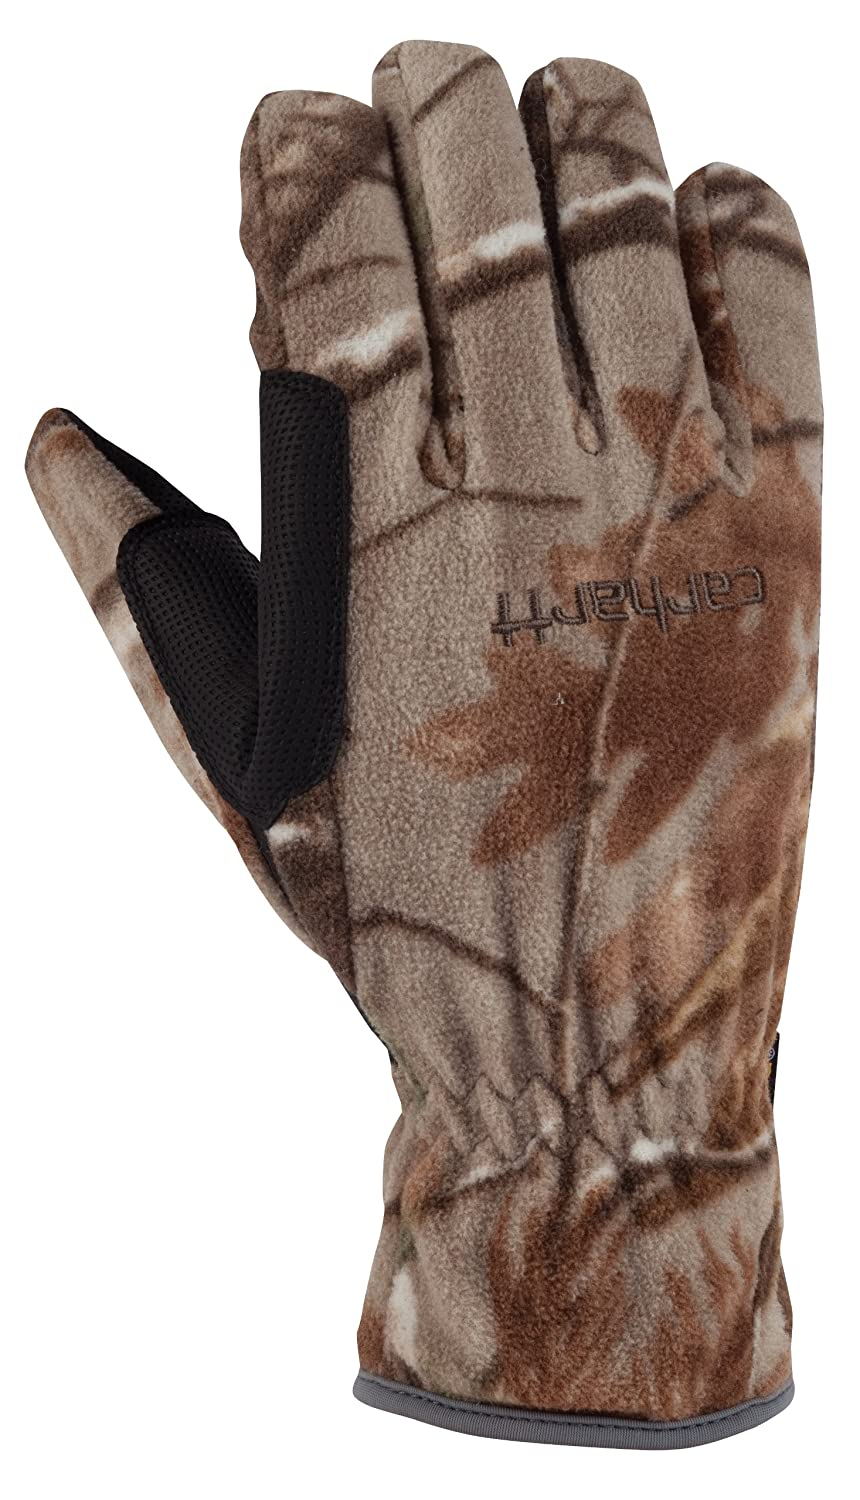 Carhartt mens Fleece Work and Hunting Glove Carhartt Mens Gloves A556